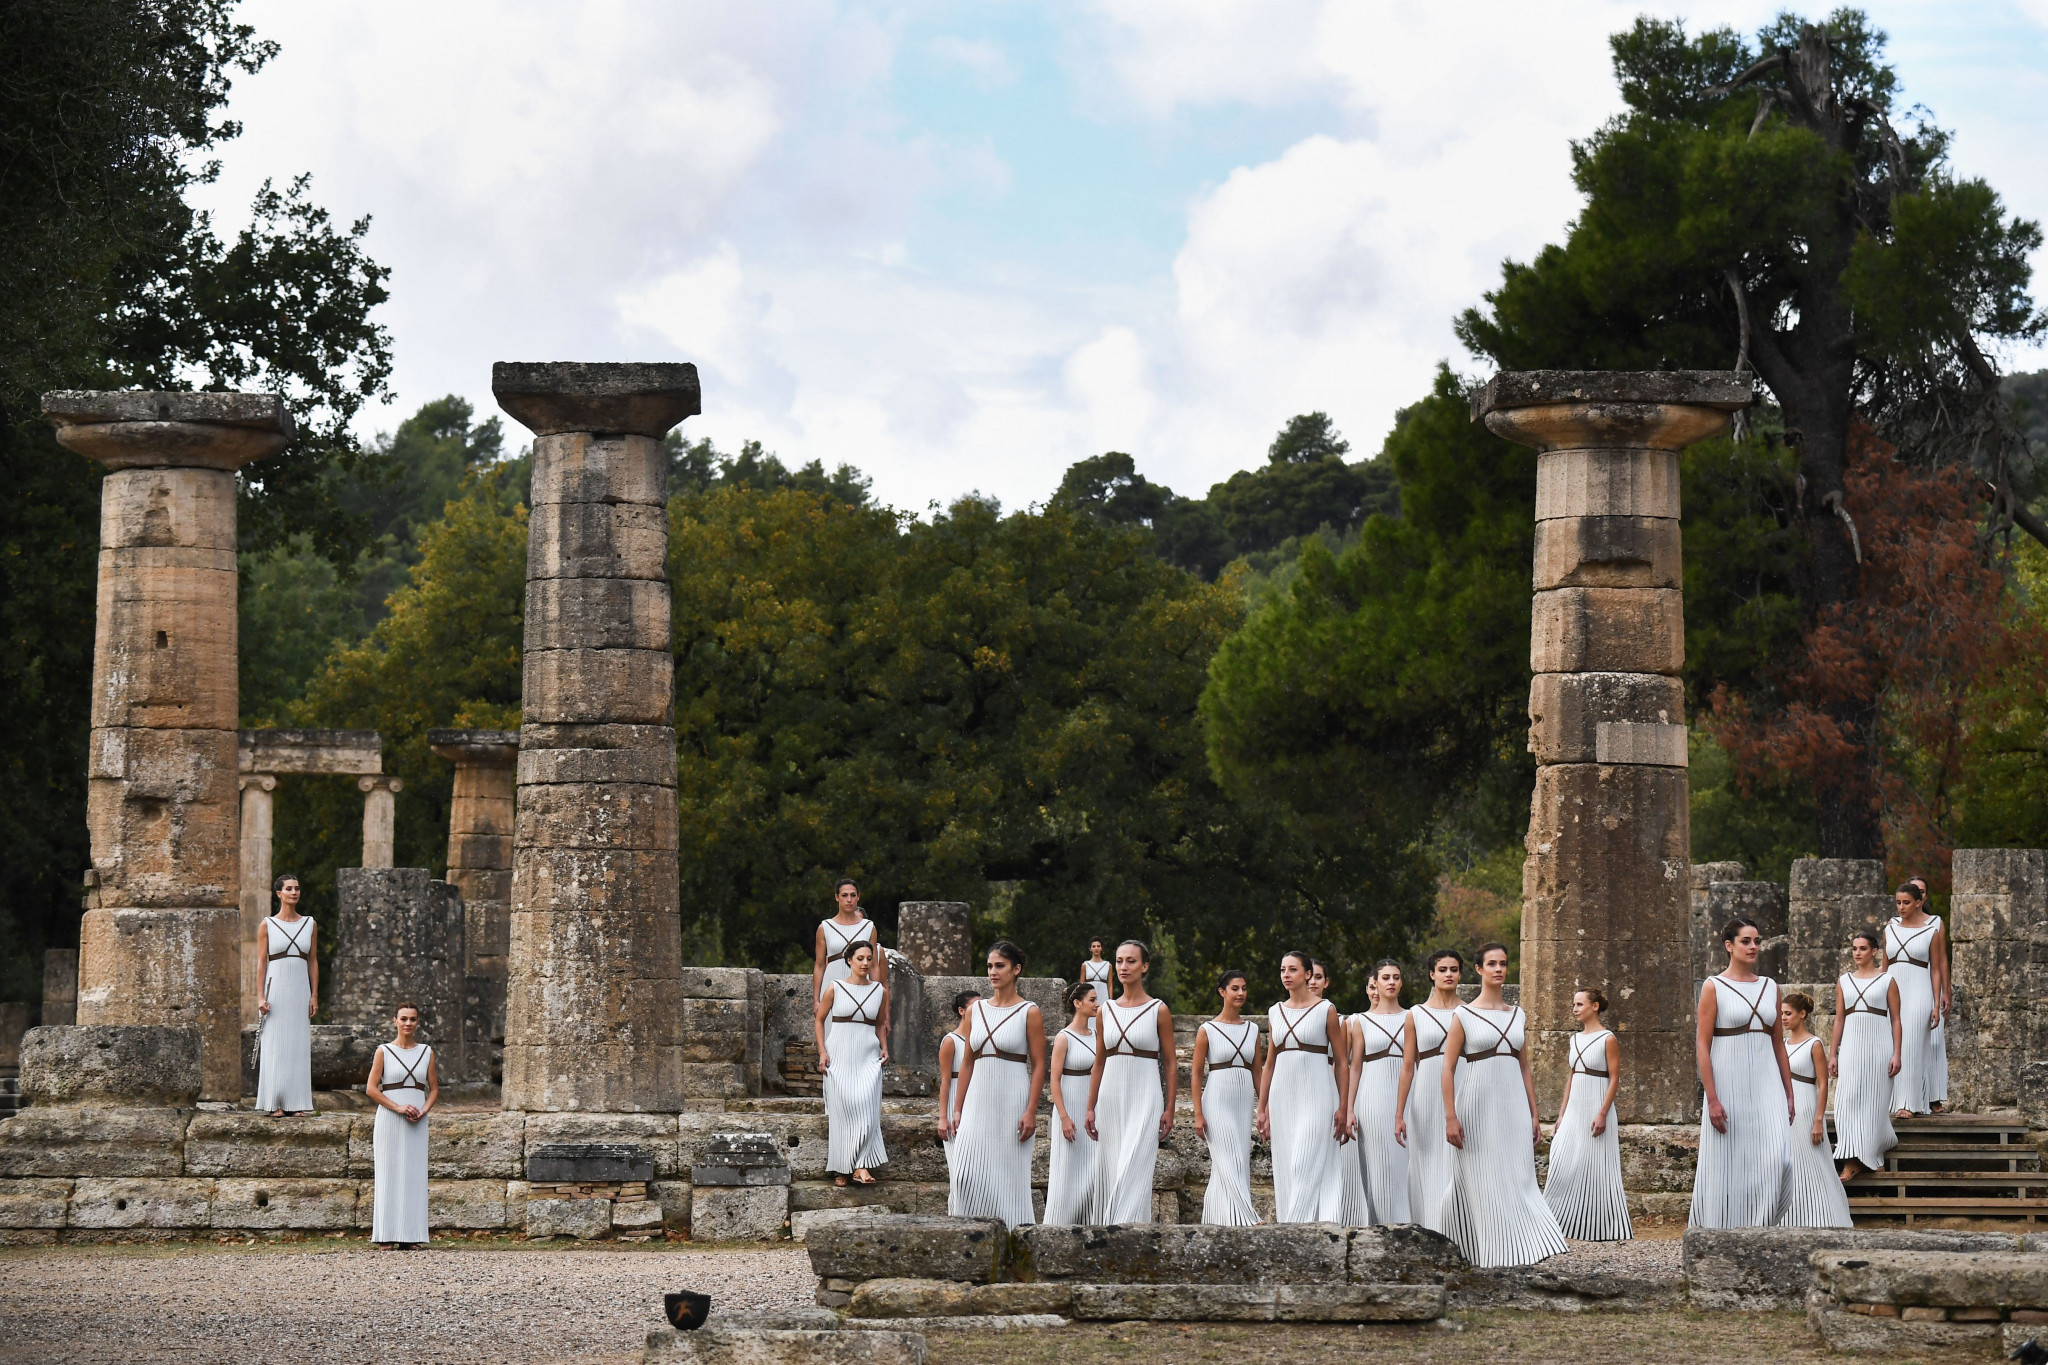 The Temple of Hera took centre stage for the event ©Getty Images